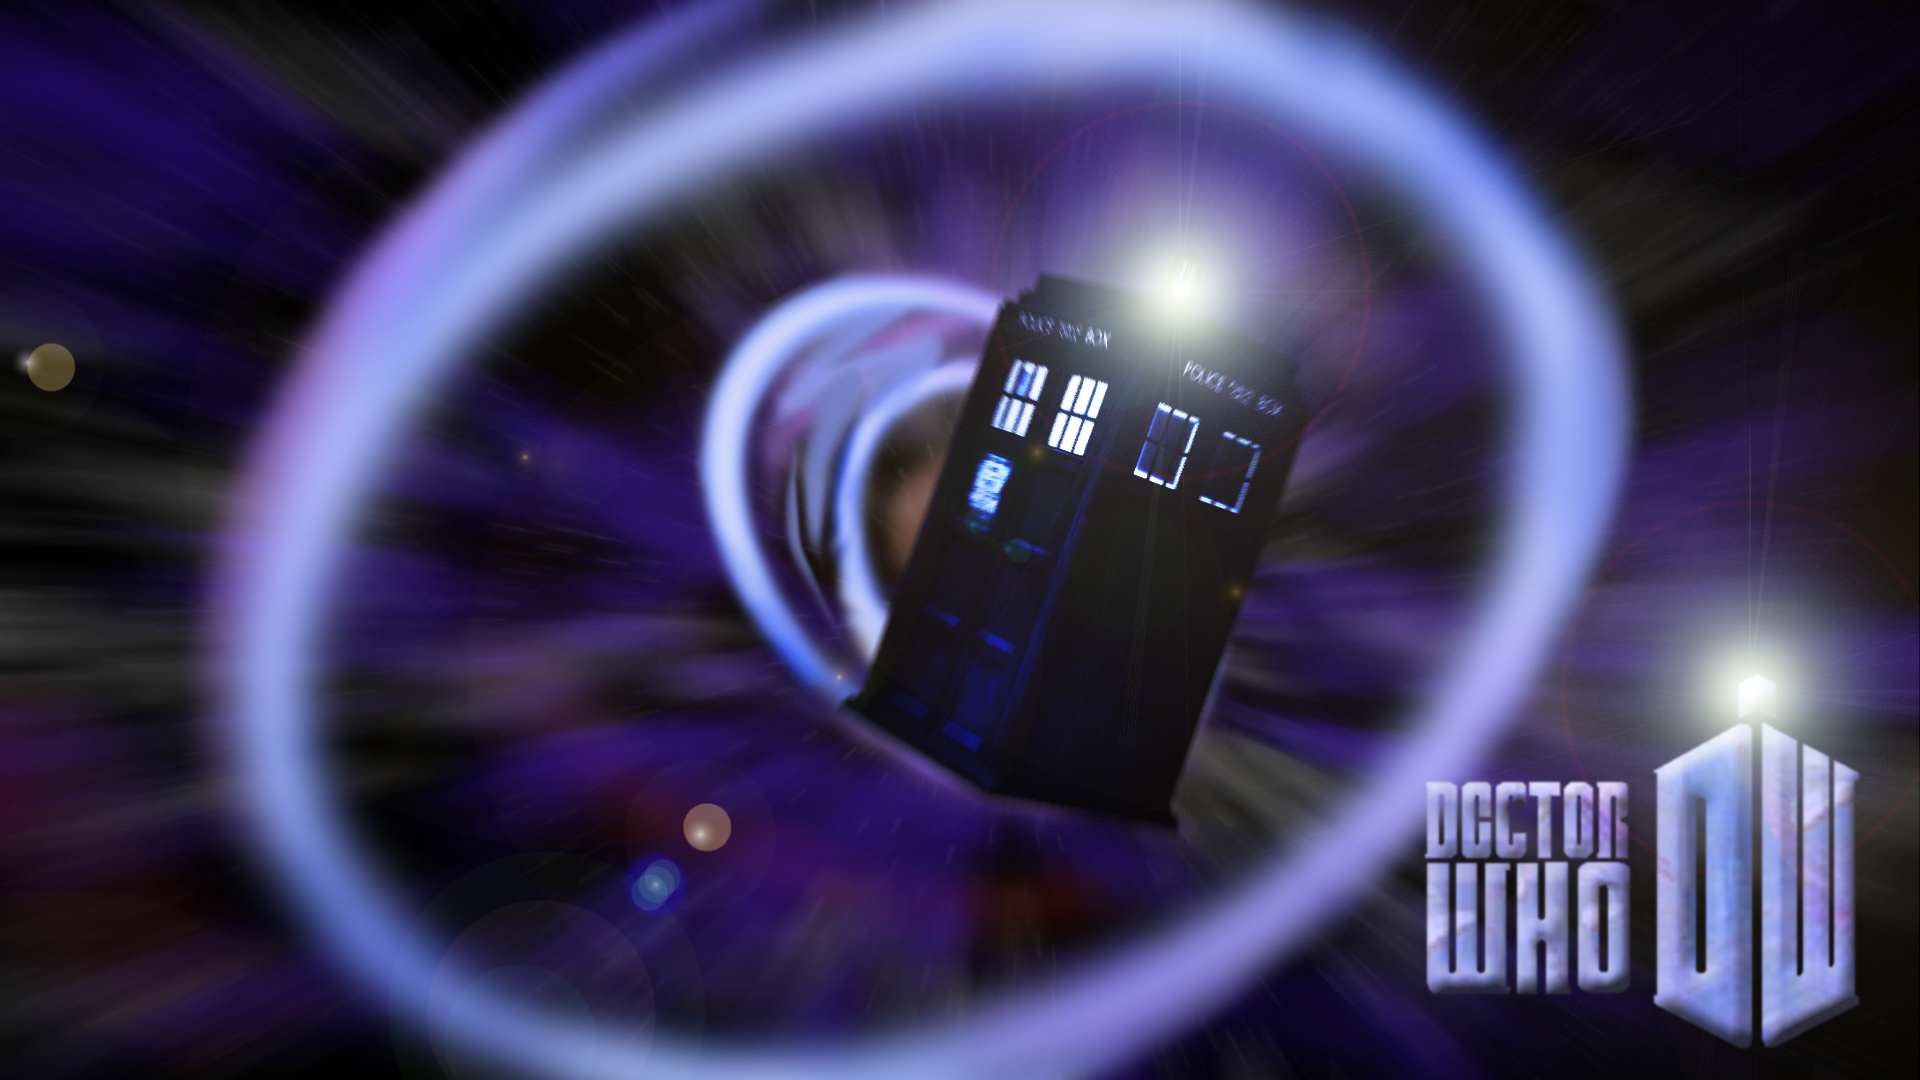 Free Download Doctor Who Logo Wallpaper Hd Wallpapers